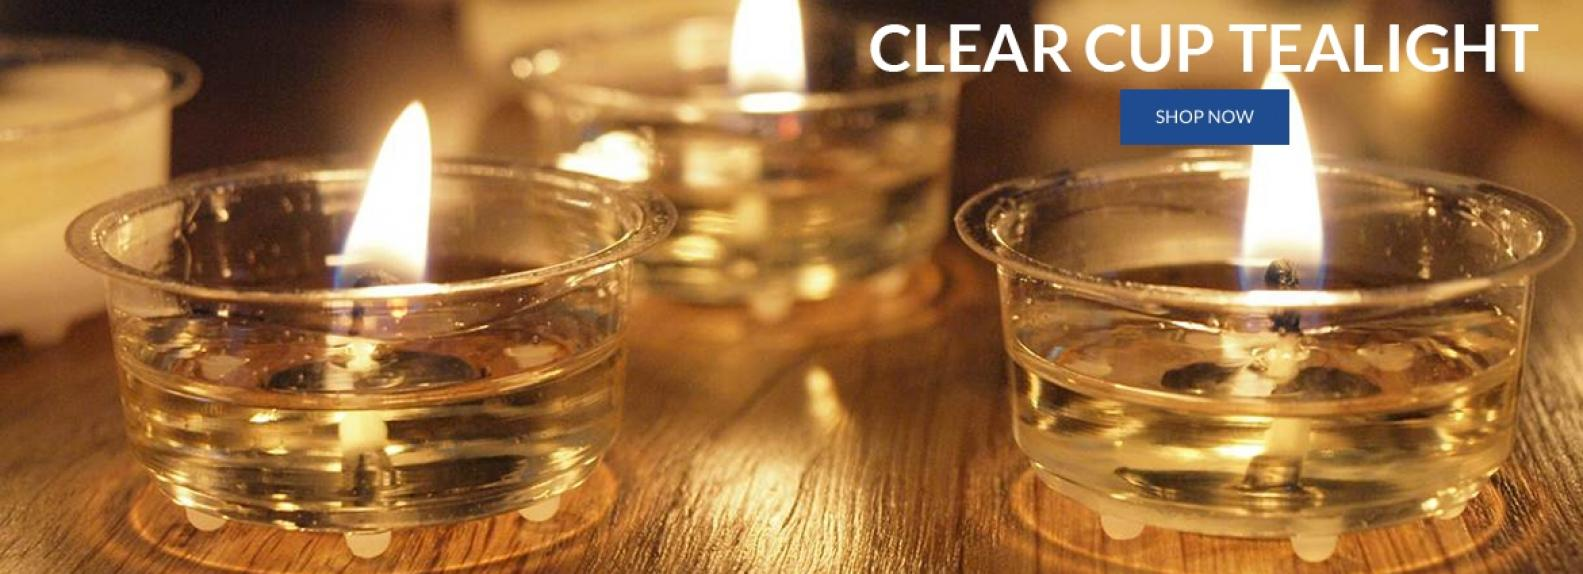 Clear cup tealight